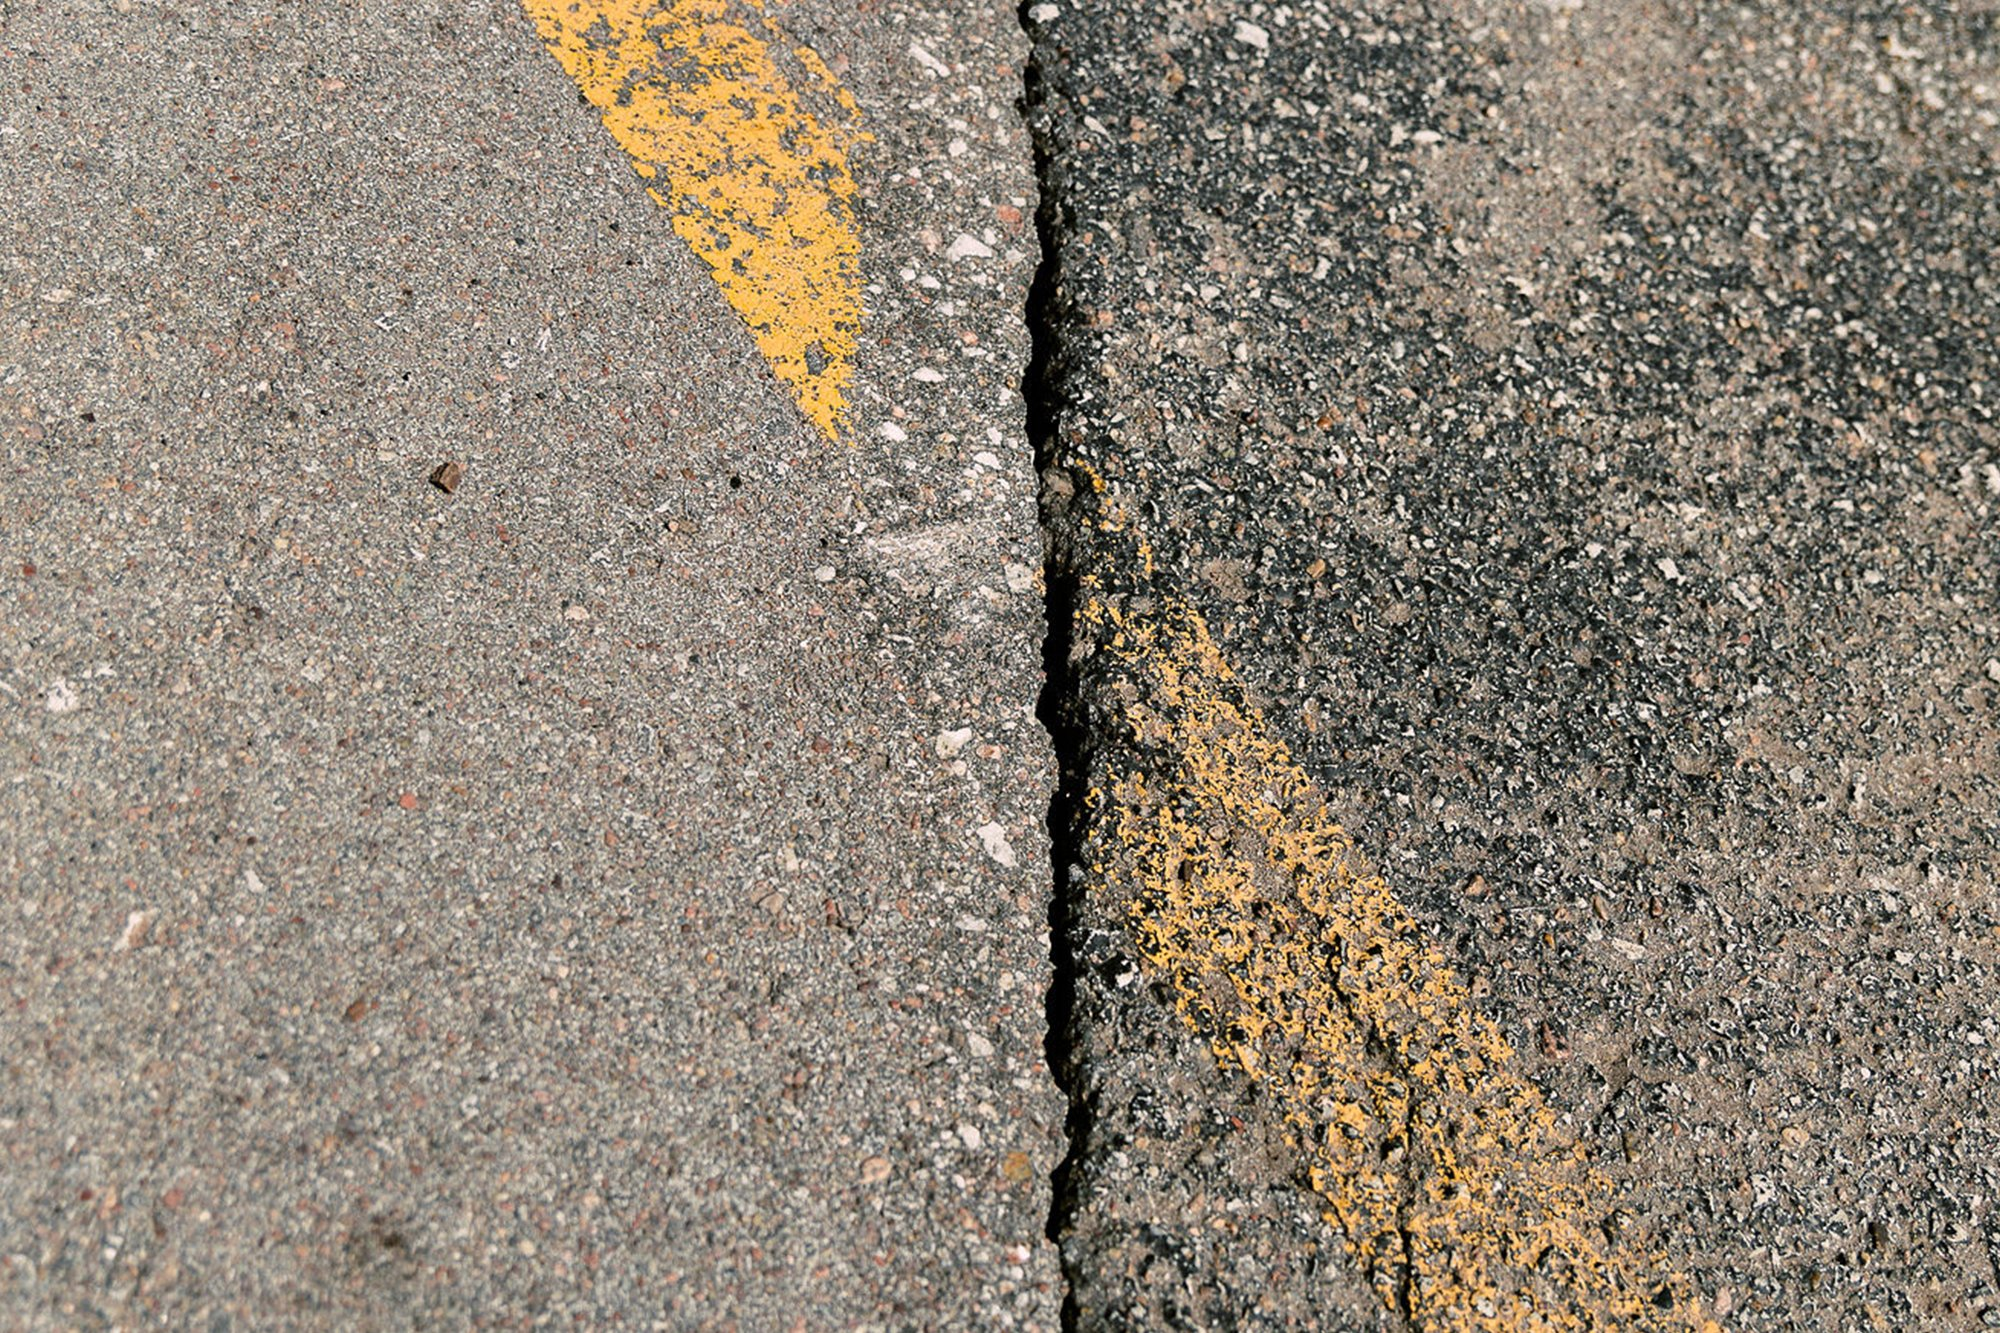 Lincoln Paving and Asphalt Repair crack repair and sealing home feature - America's Pavement Maintenance Specialist | Lincoln, Nebraska